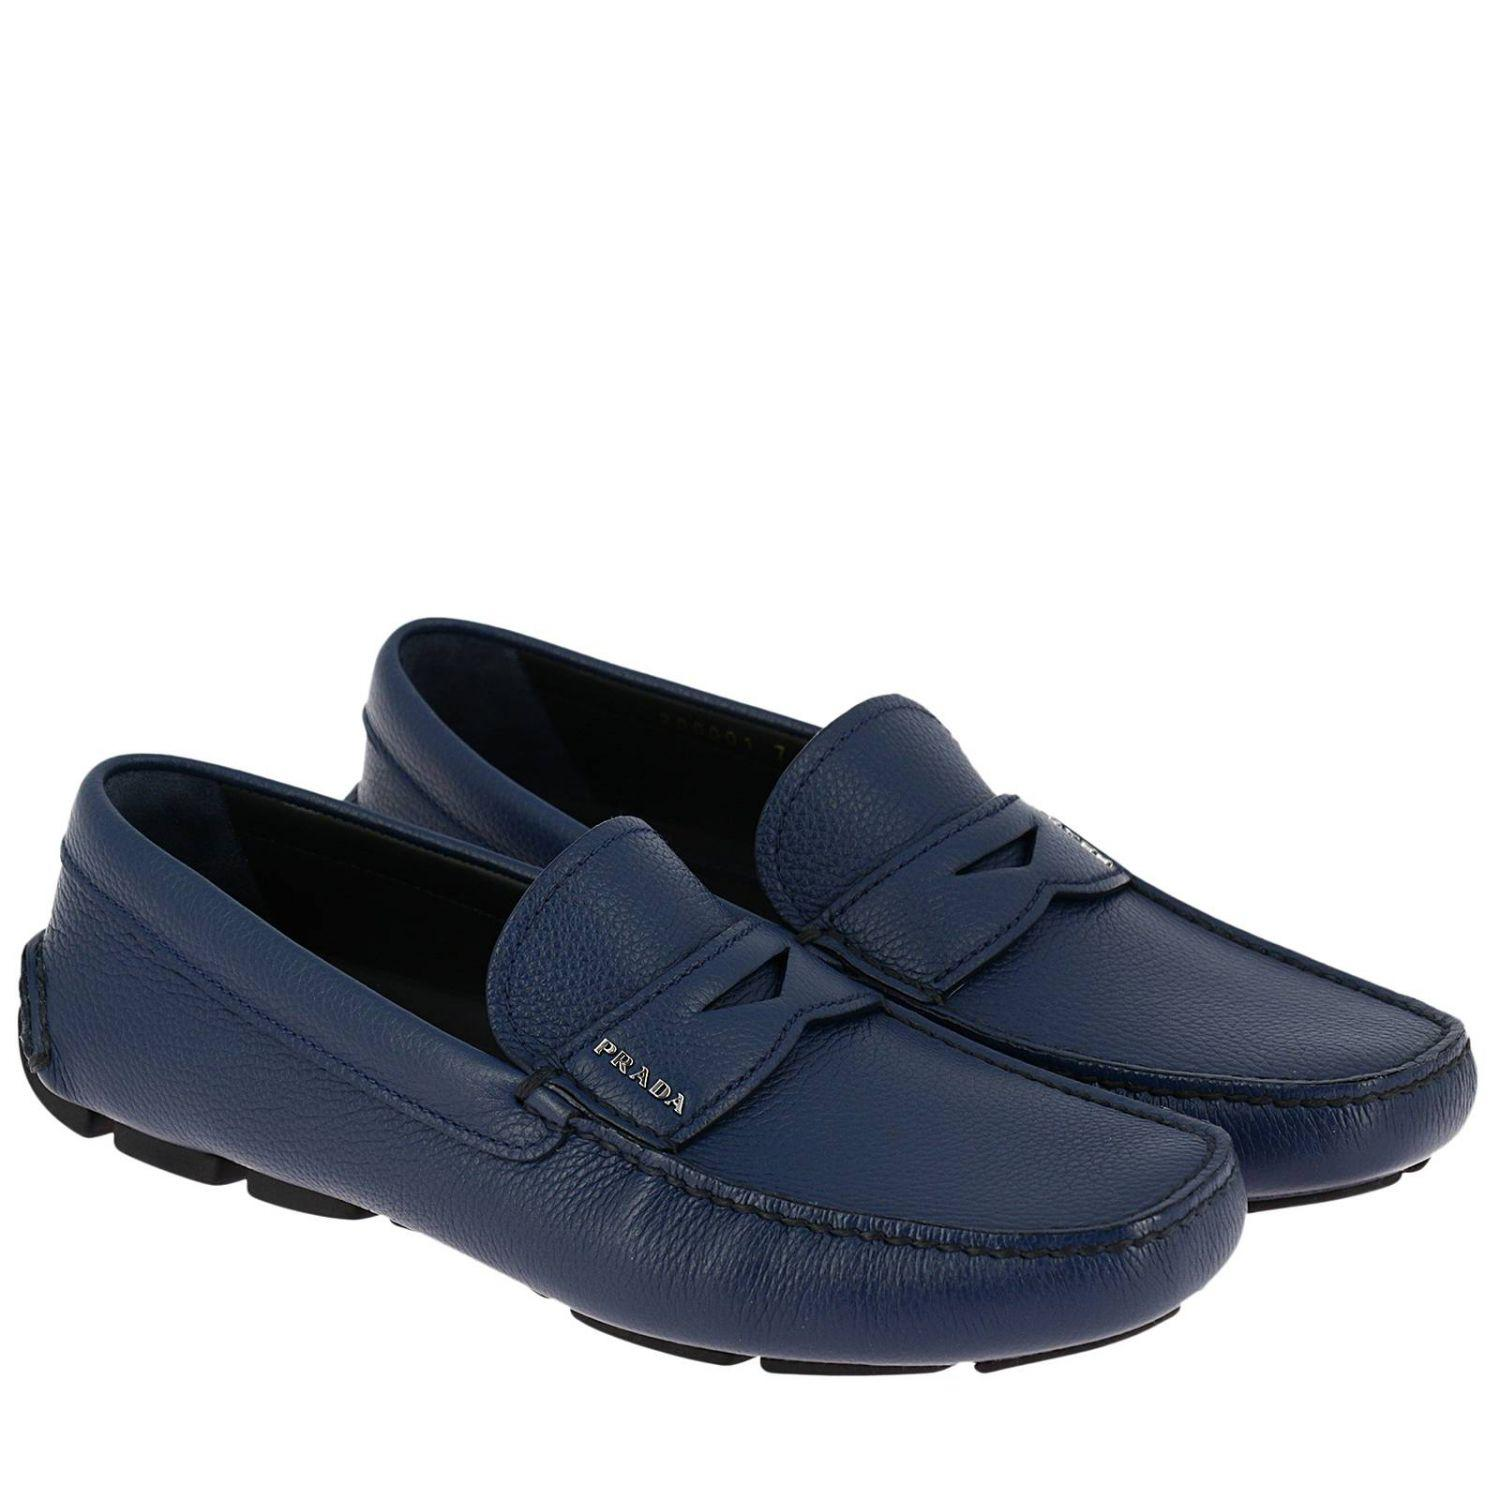 e91ded112b6f ... germany prada blue loafers shoes men for men lyst. view fullscreen  6ab7f b08a4